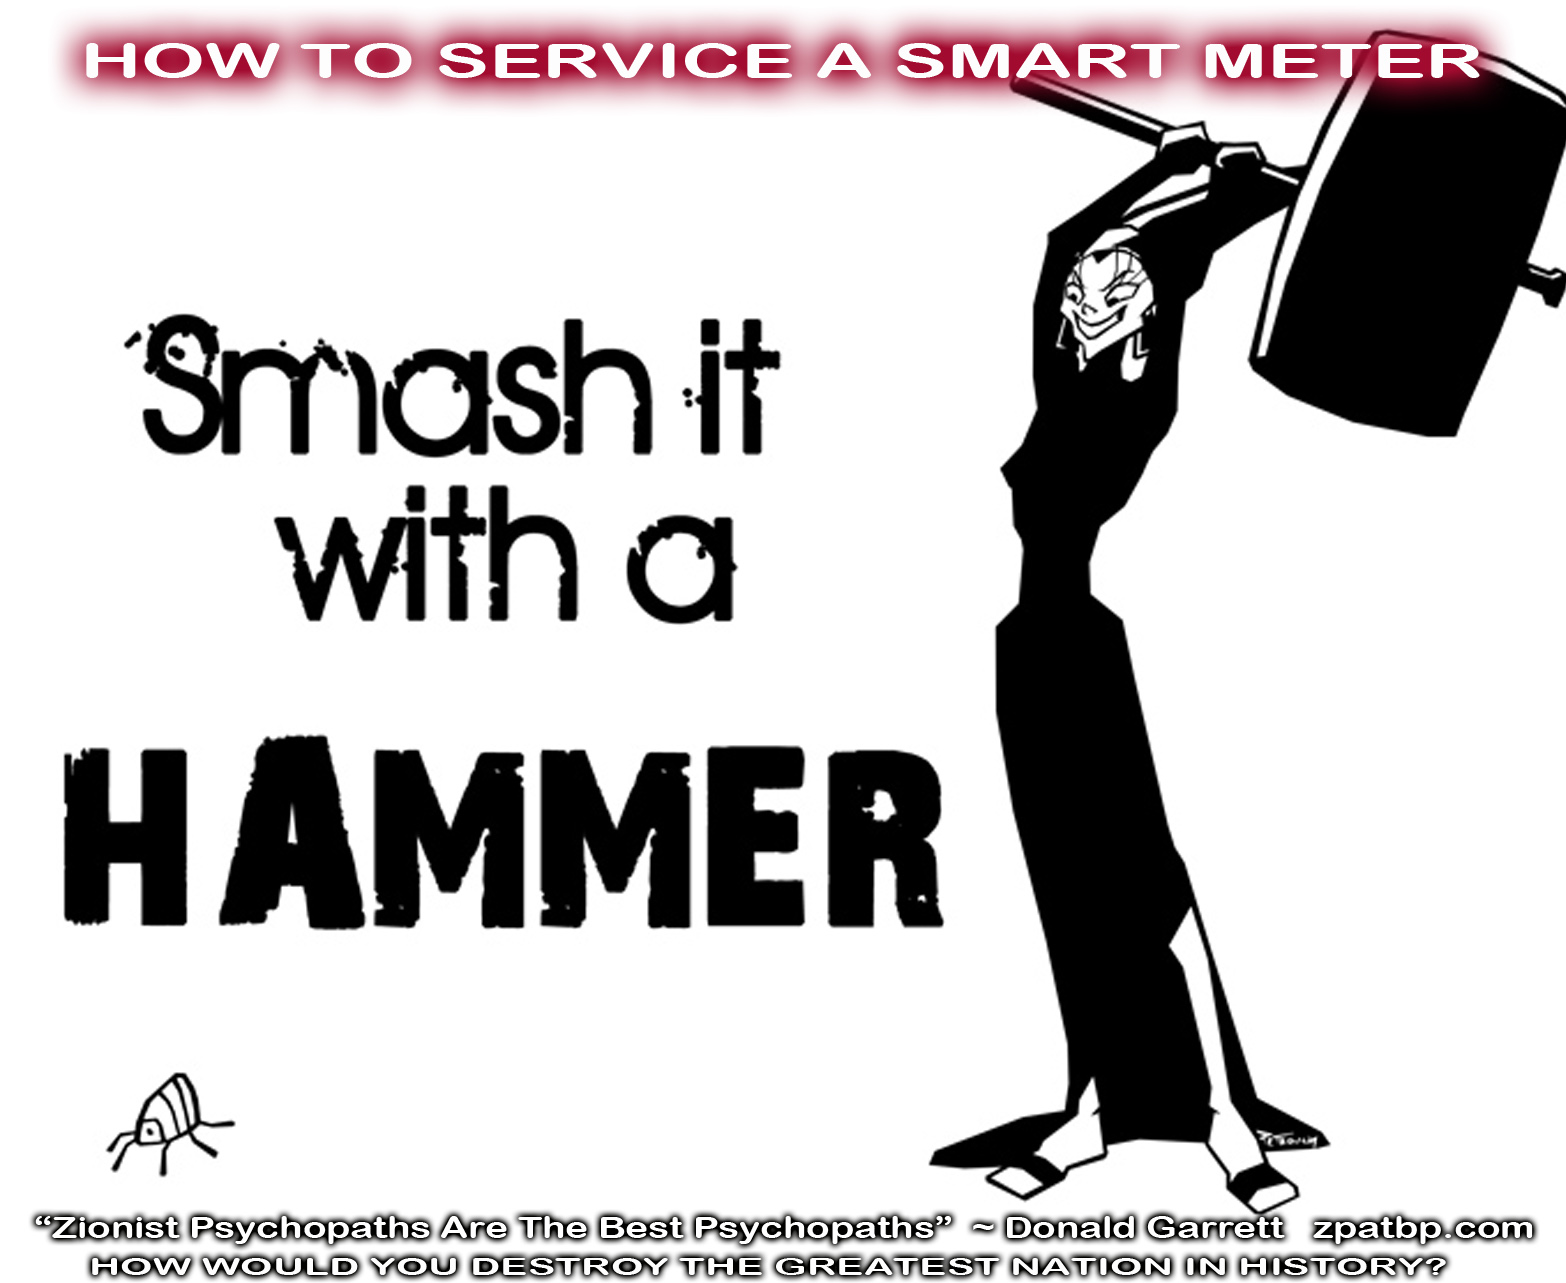 How To Service A Smart Meter: Smash it with a HAMMER